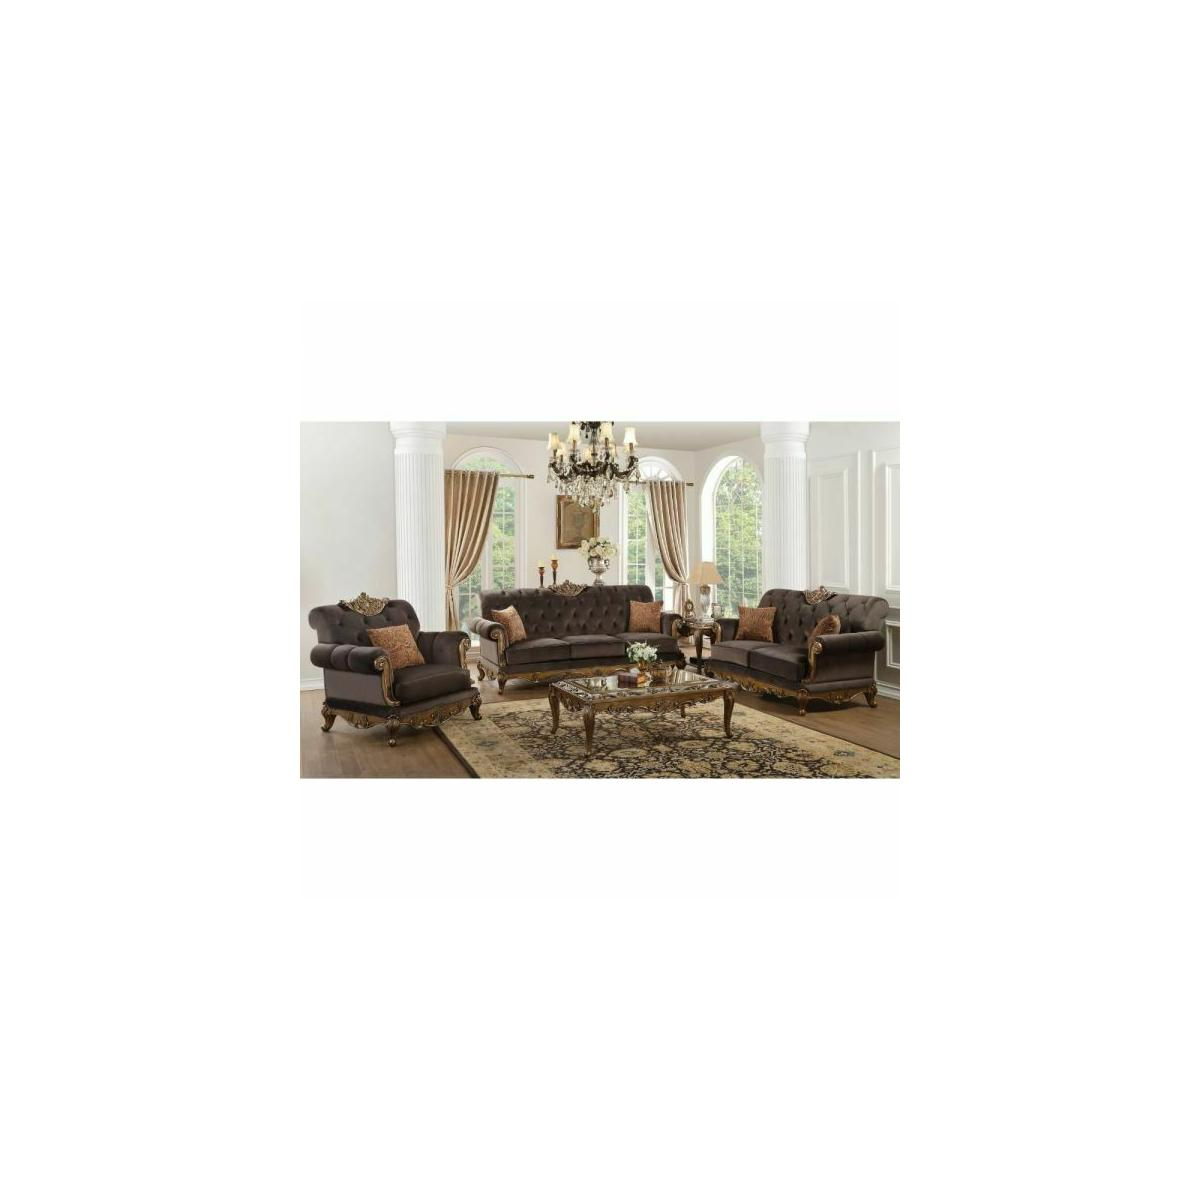 ACME Orianne Sofa w/2 Pillows - 53795 - Charcoal Fabric & Antique Gold